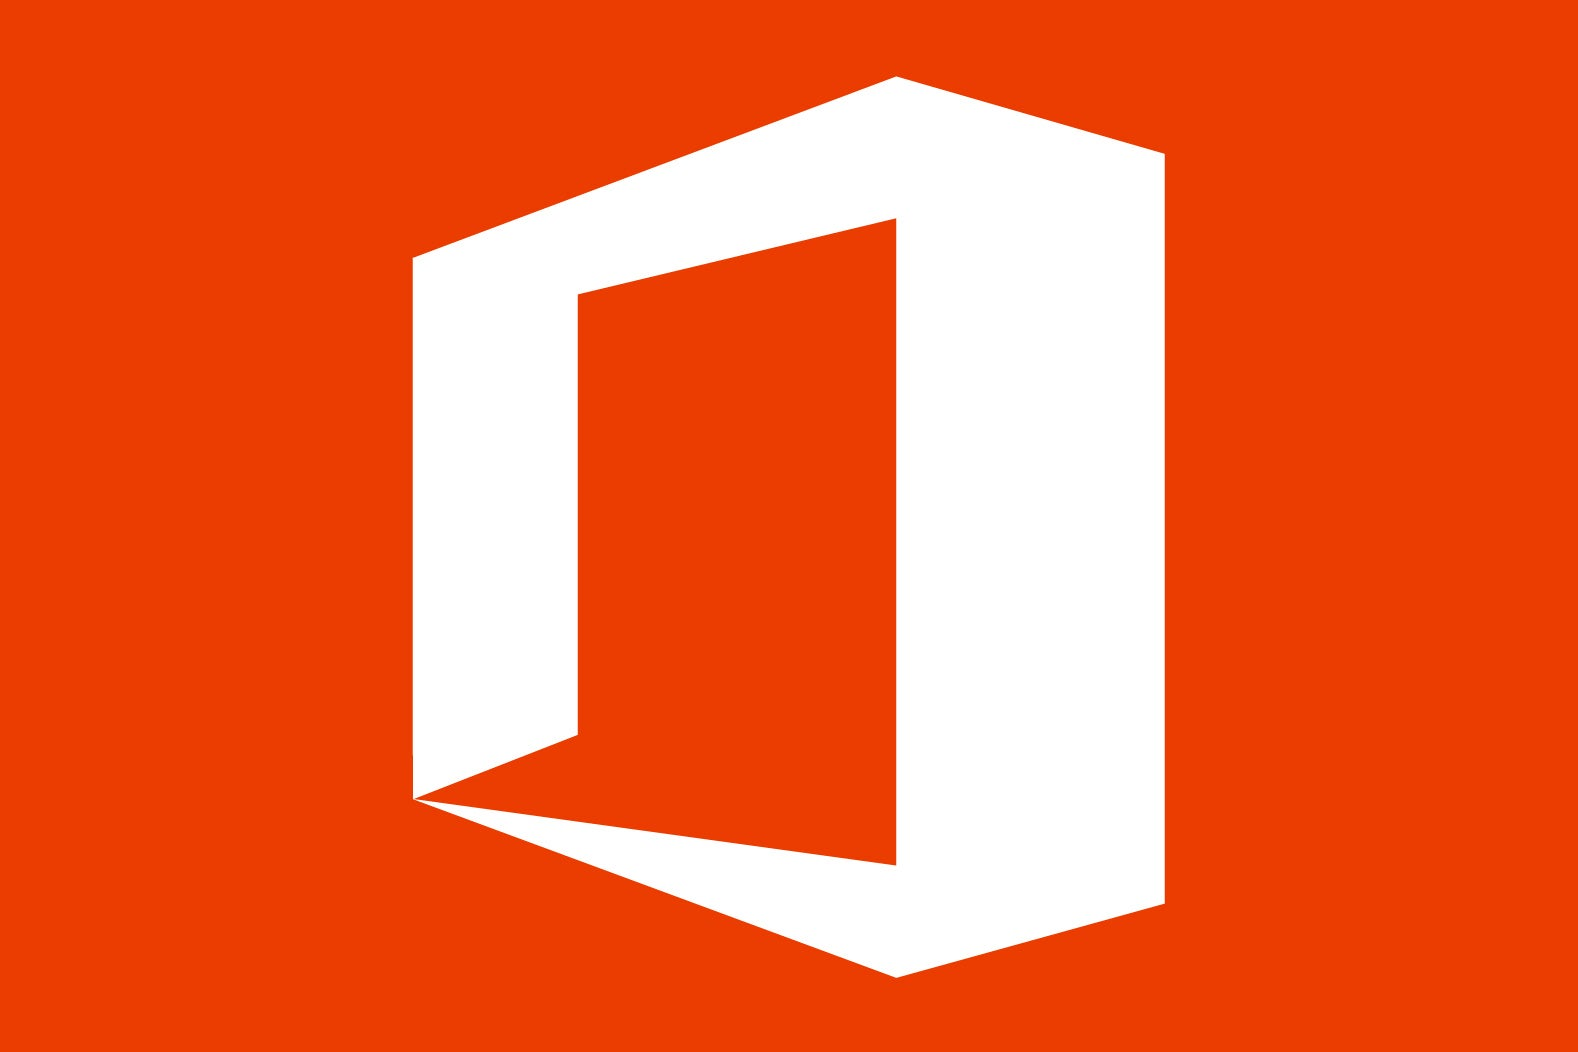 Office Tool Plus 8.0.2.1 Beta [Multilenguaje] [UL.IO] Microsoft-office-logo-2016-100727916-orig